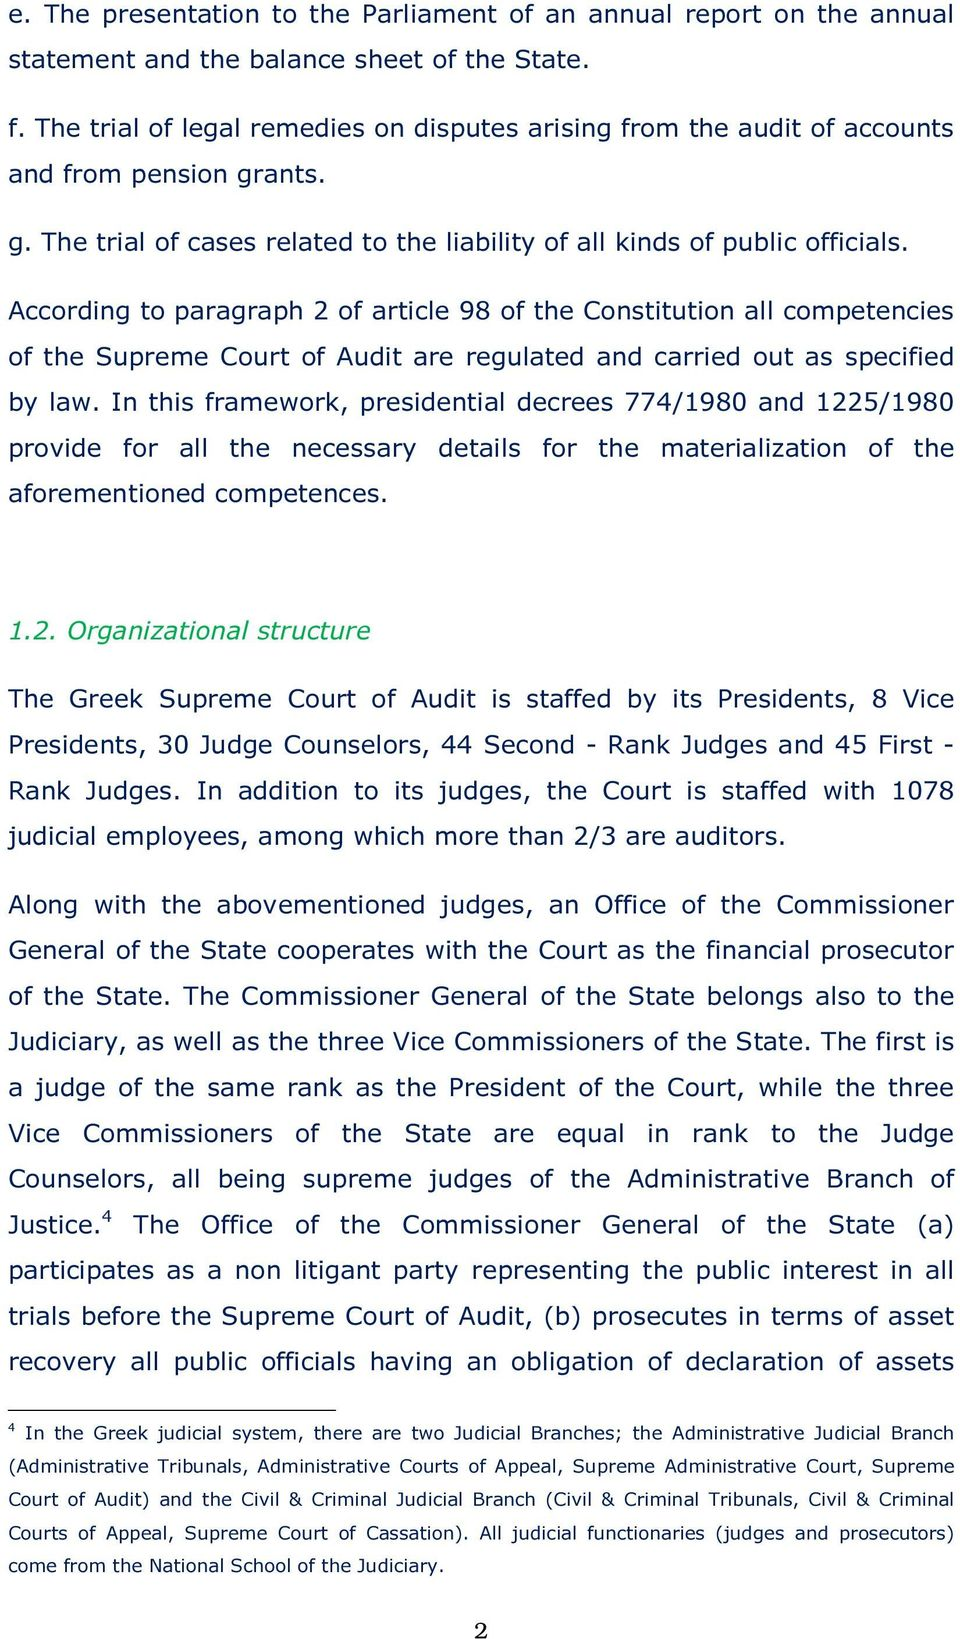 According to paragraph 2 of article 98 of the Constitution all competencies of the Supreme Court of Audit are regulated and carried out as specified by law.